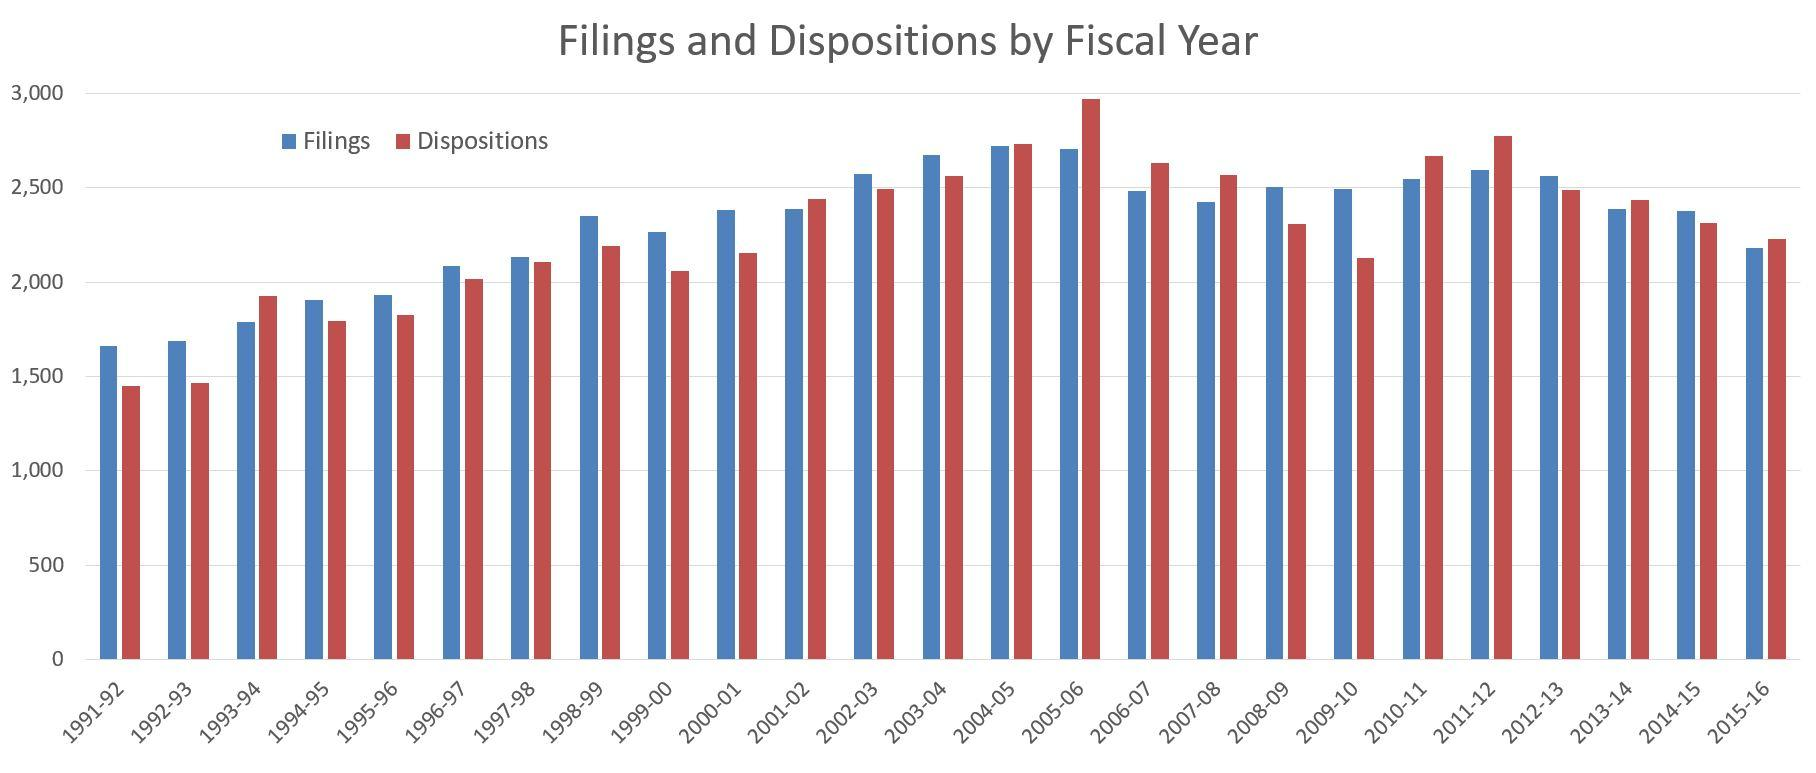 Are North Carolinas Court Of Appeals Judges Working Too Much Or No The Virginia Is A State Appellate For Filings And Dispositions By Year At Nc